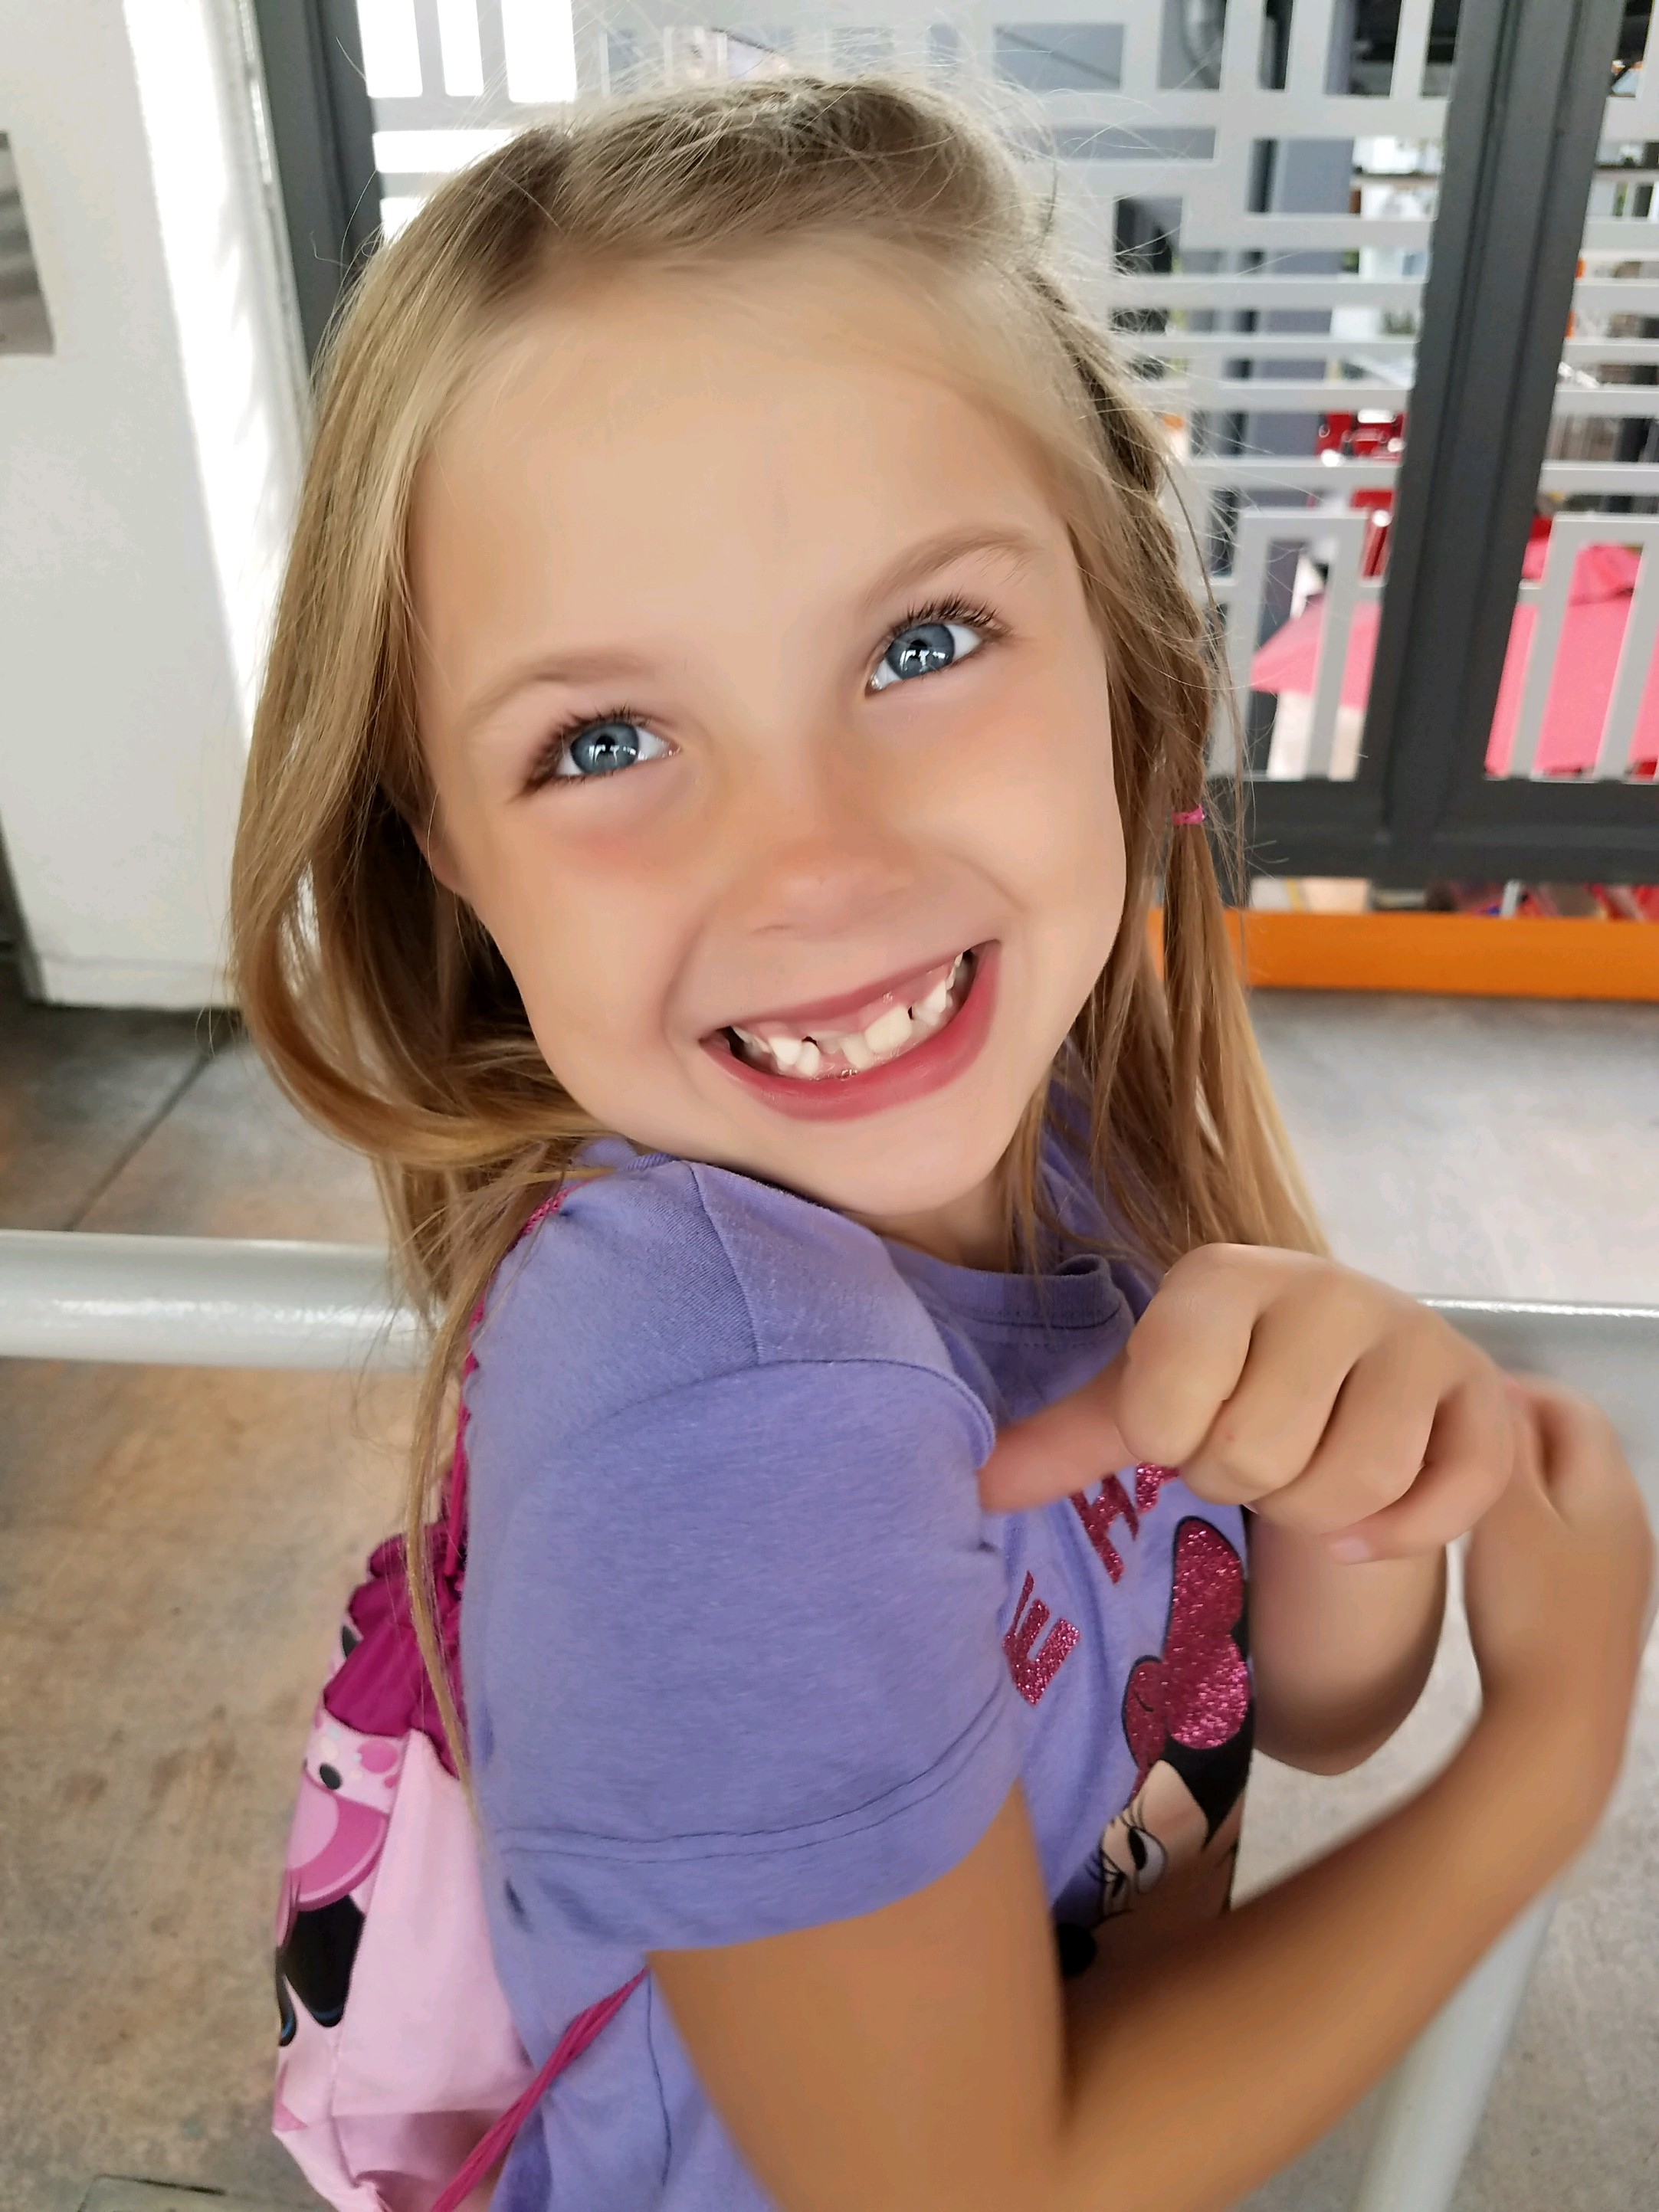 Josie Piatt shows off her grin in spite of worries over possibly losing a permanent tooth.